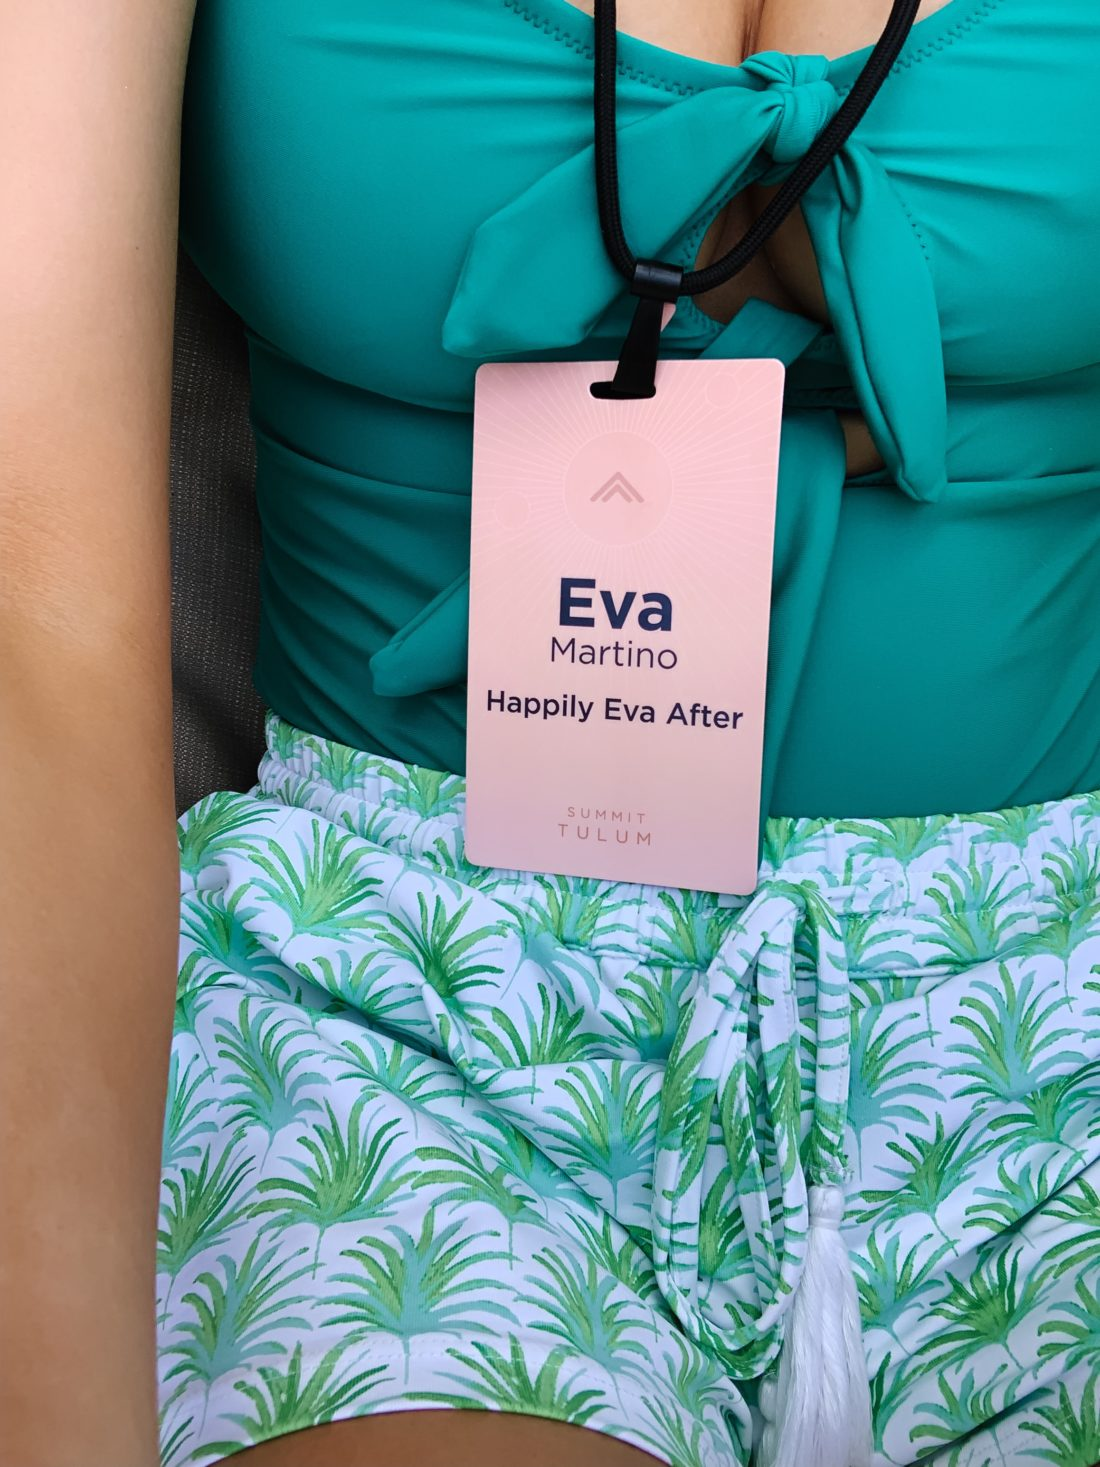 Eva Amurri Martino and her pink branded name tag at Summit Tulum